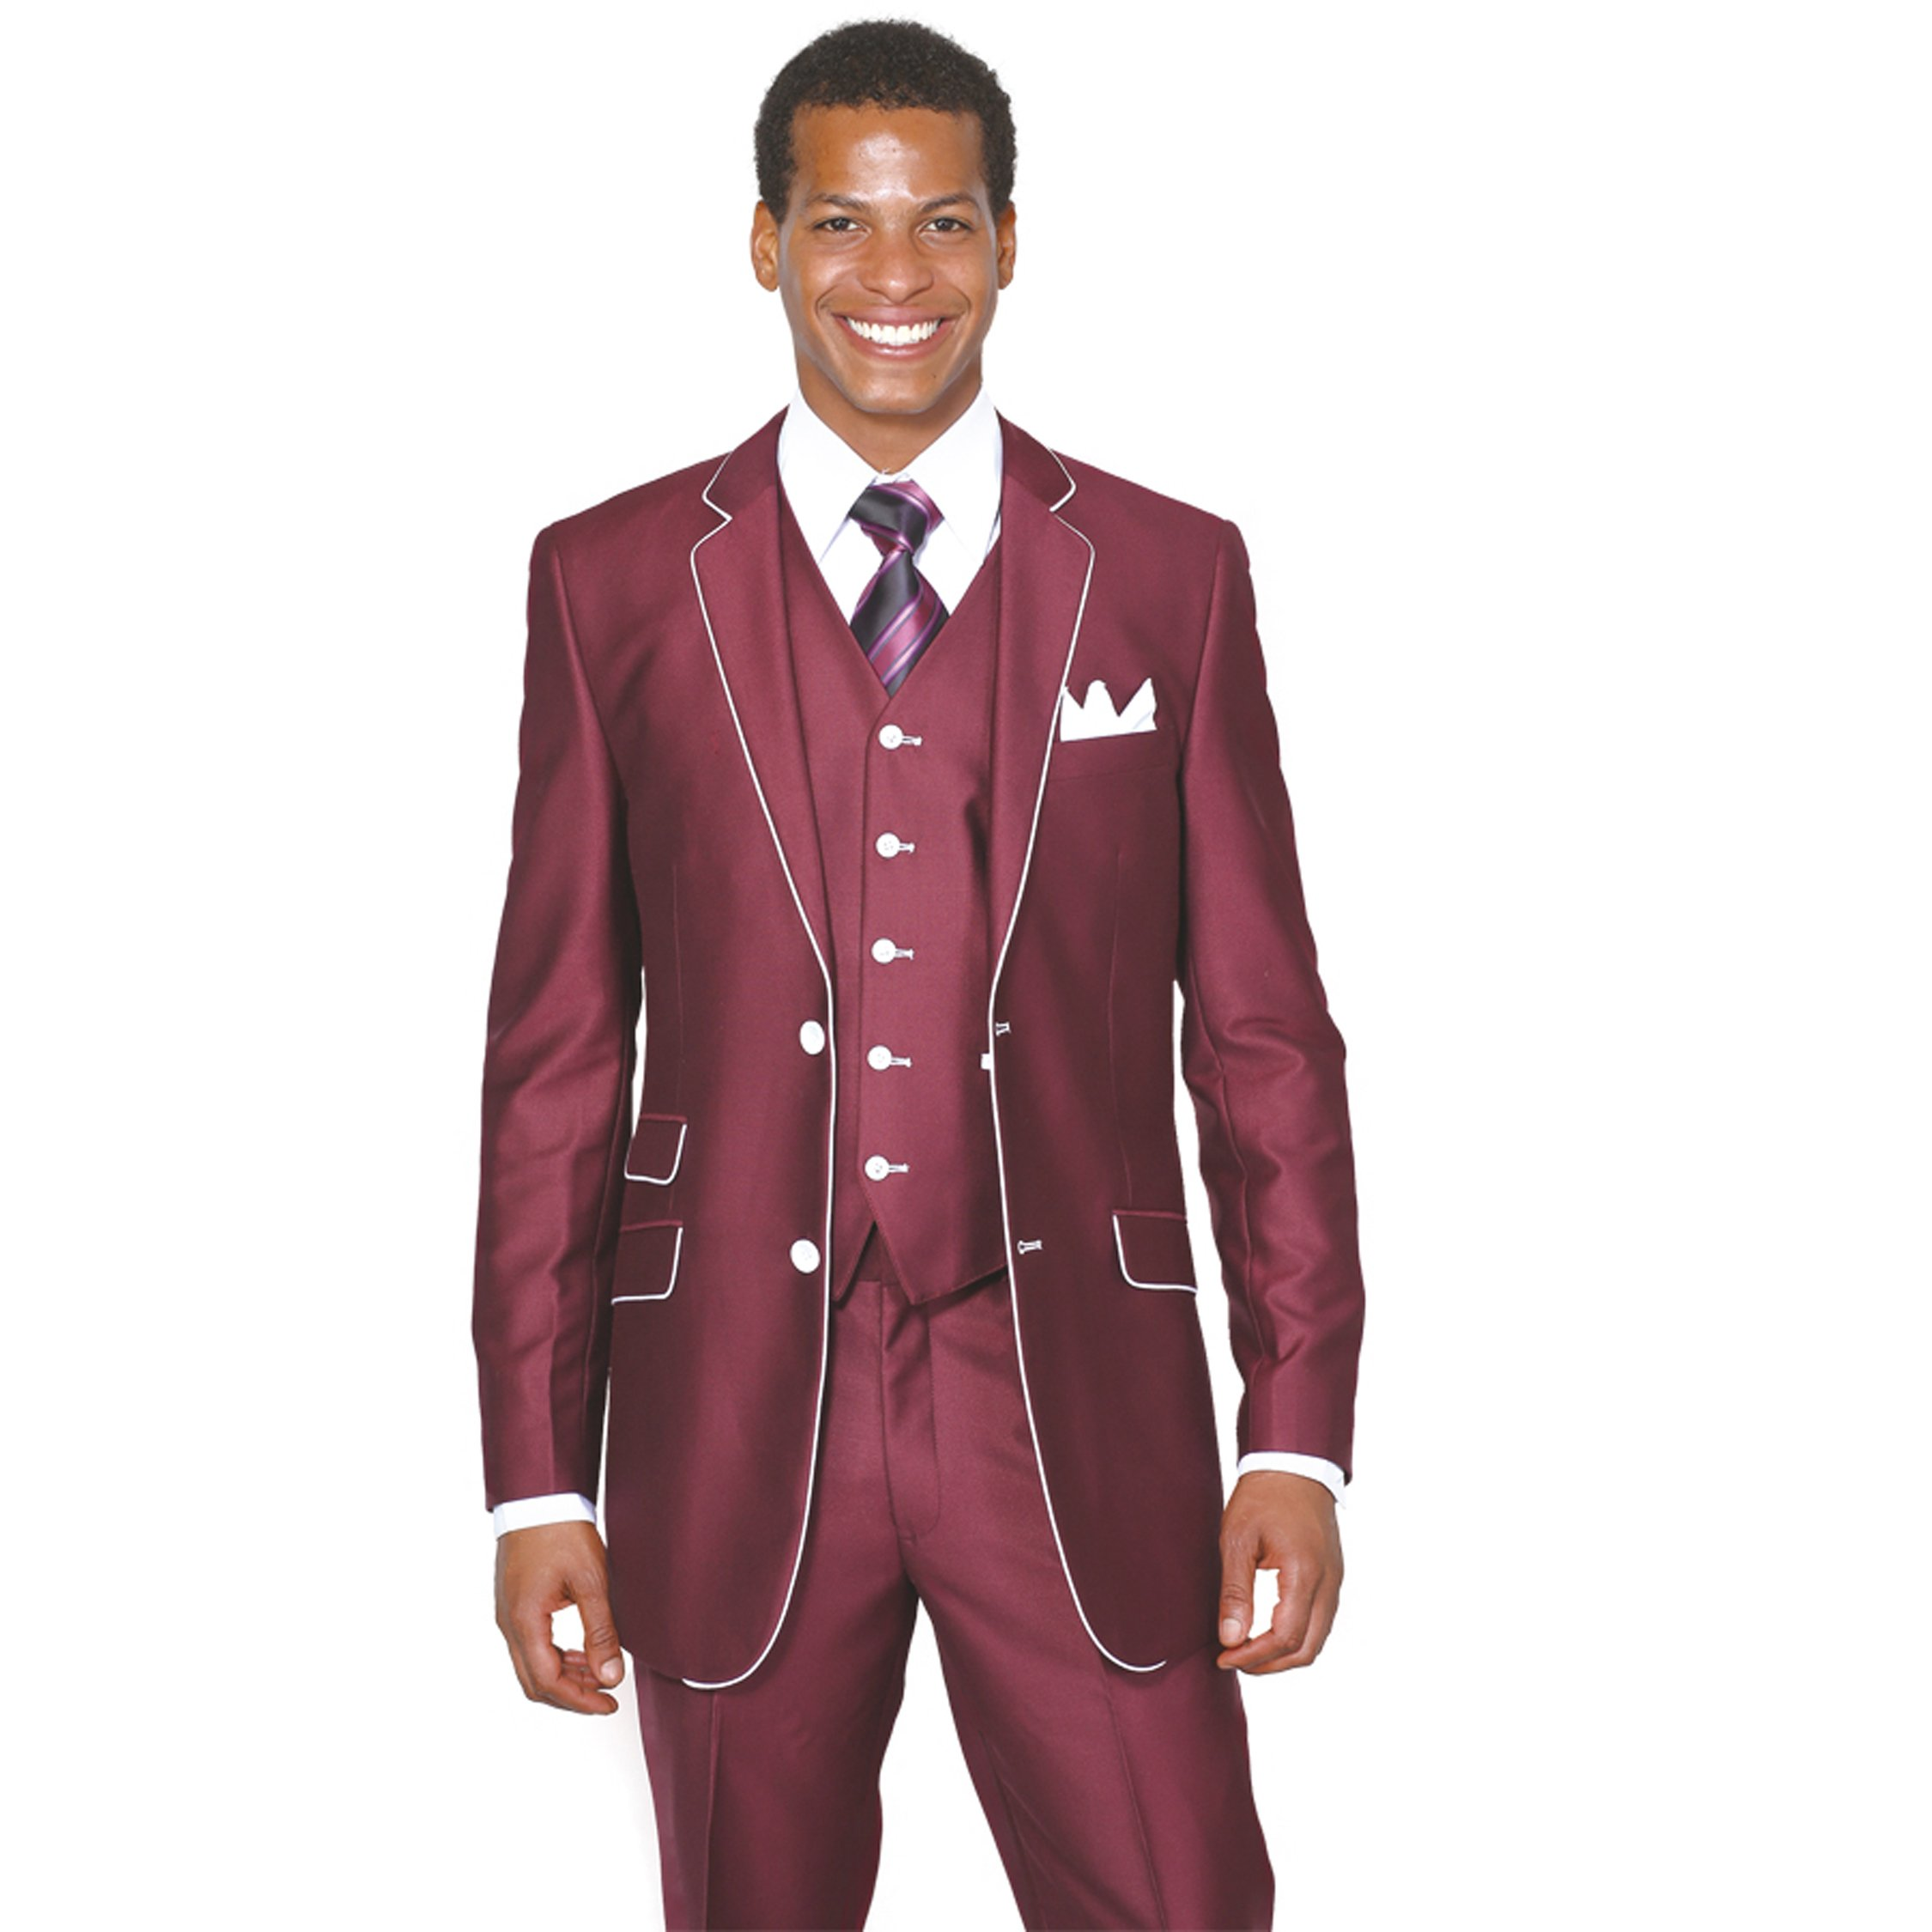 Milano Moda 2 Button Slim Fit Fashion Suit with White Hemming 5702V1 BGD-44R